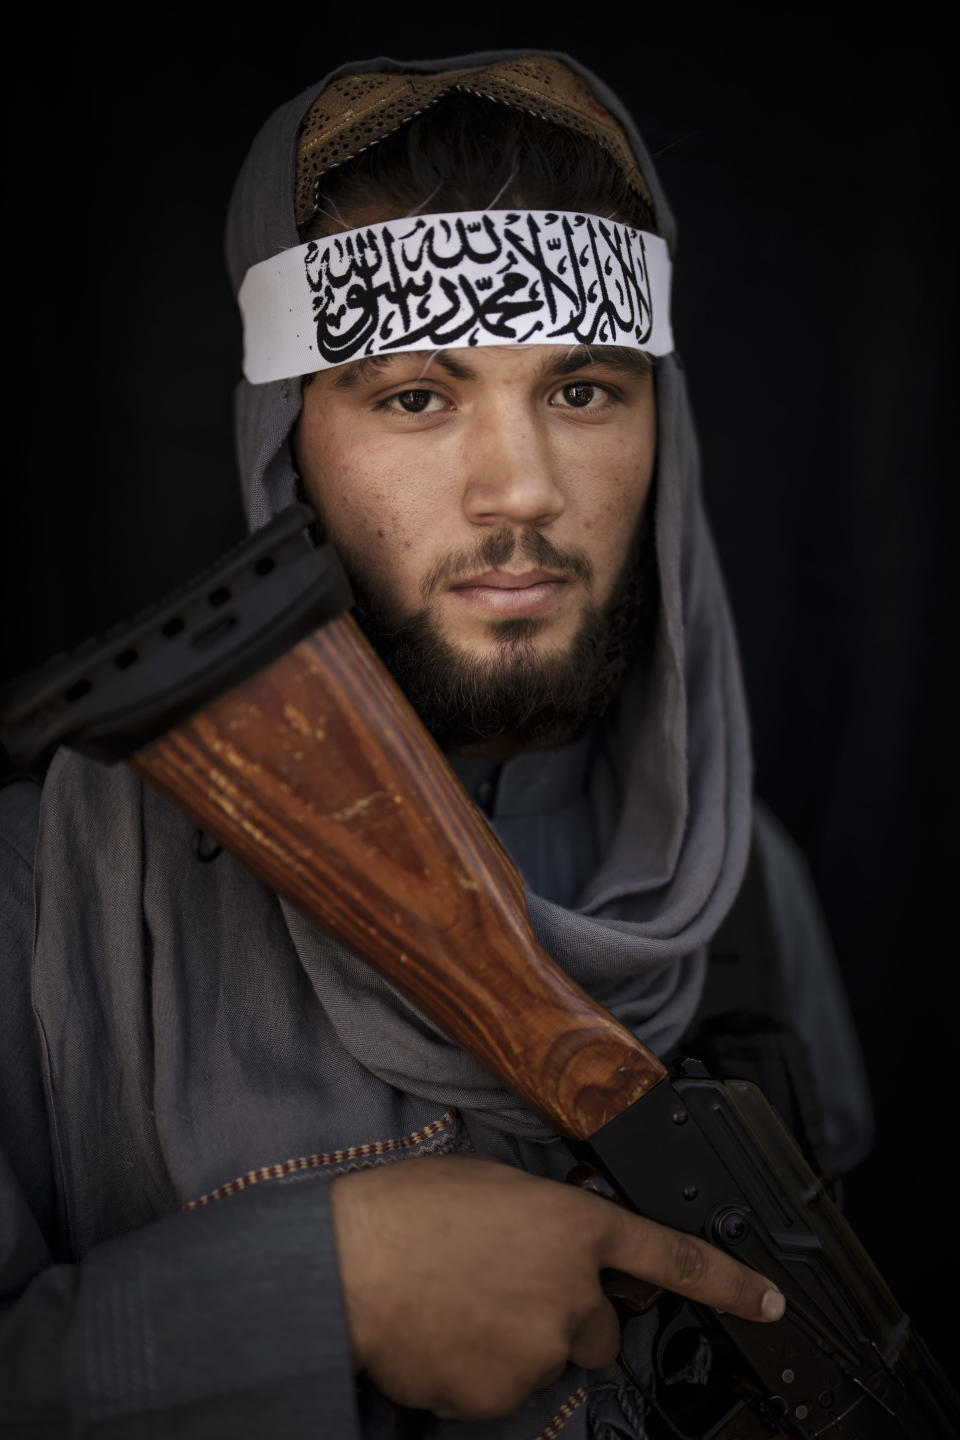 Taliban fighter Osman, 20, poses for a photo at a police station holding his AK-47 rifle and a wearing a new Taliban-flag headband on top of his scarf, in Kabul, Afghanistan, Thursday, Sept. 16, 2021. (AP Photo/Felipe Dana)